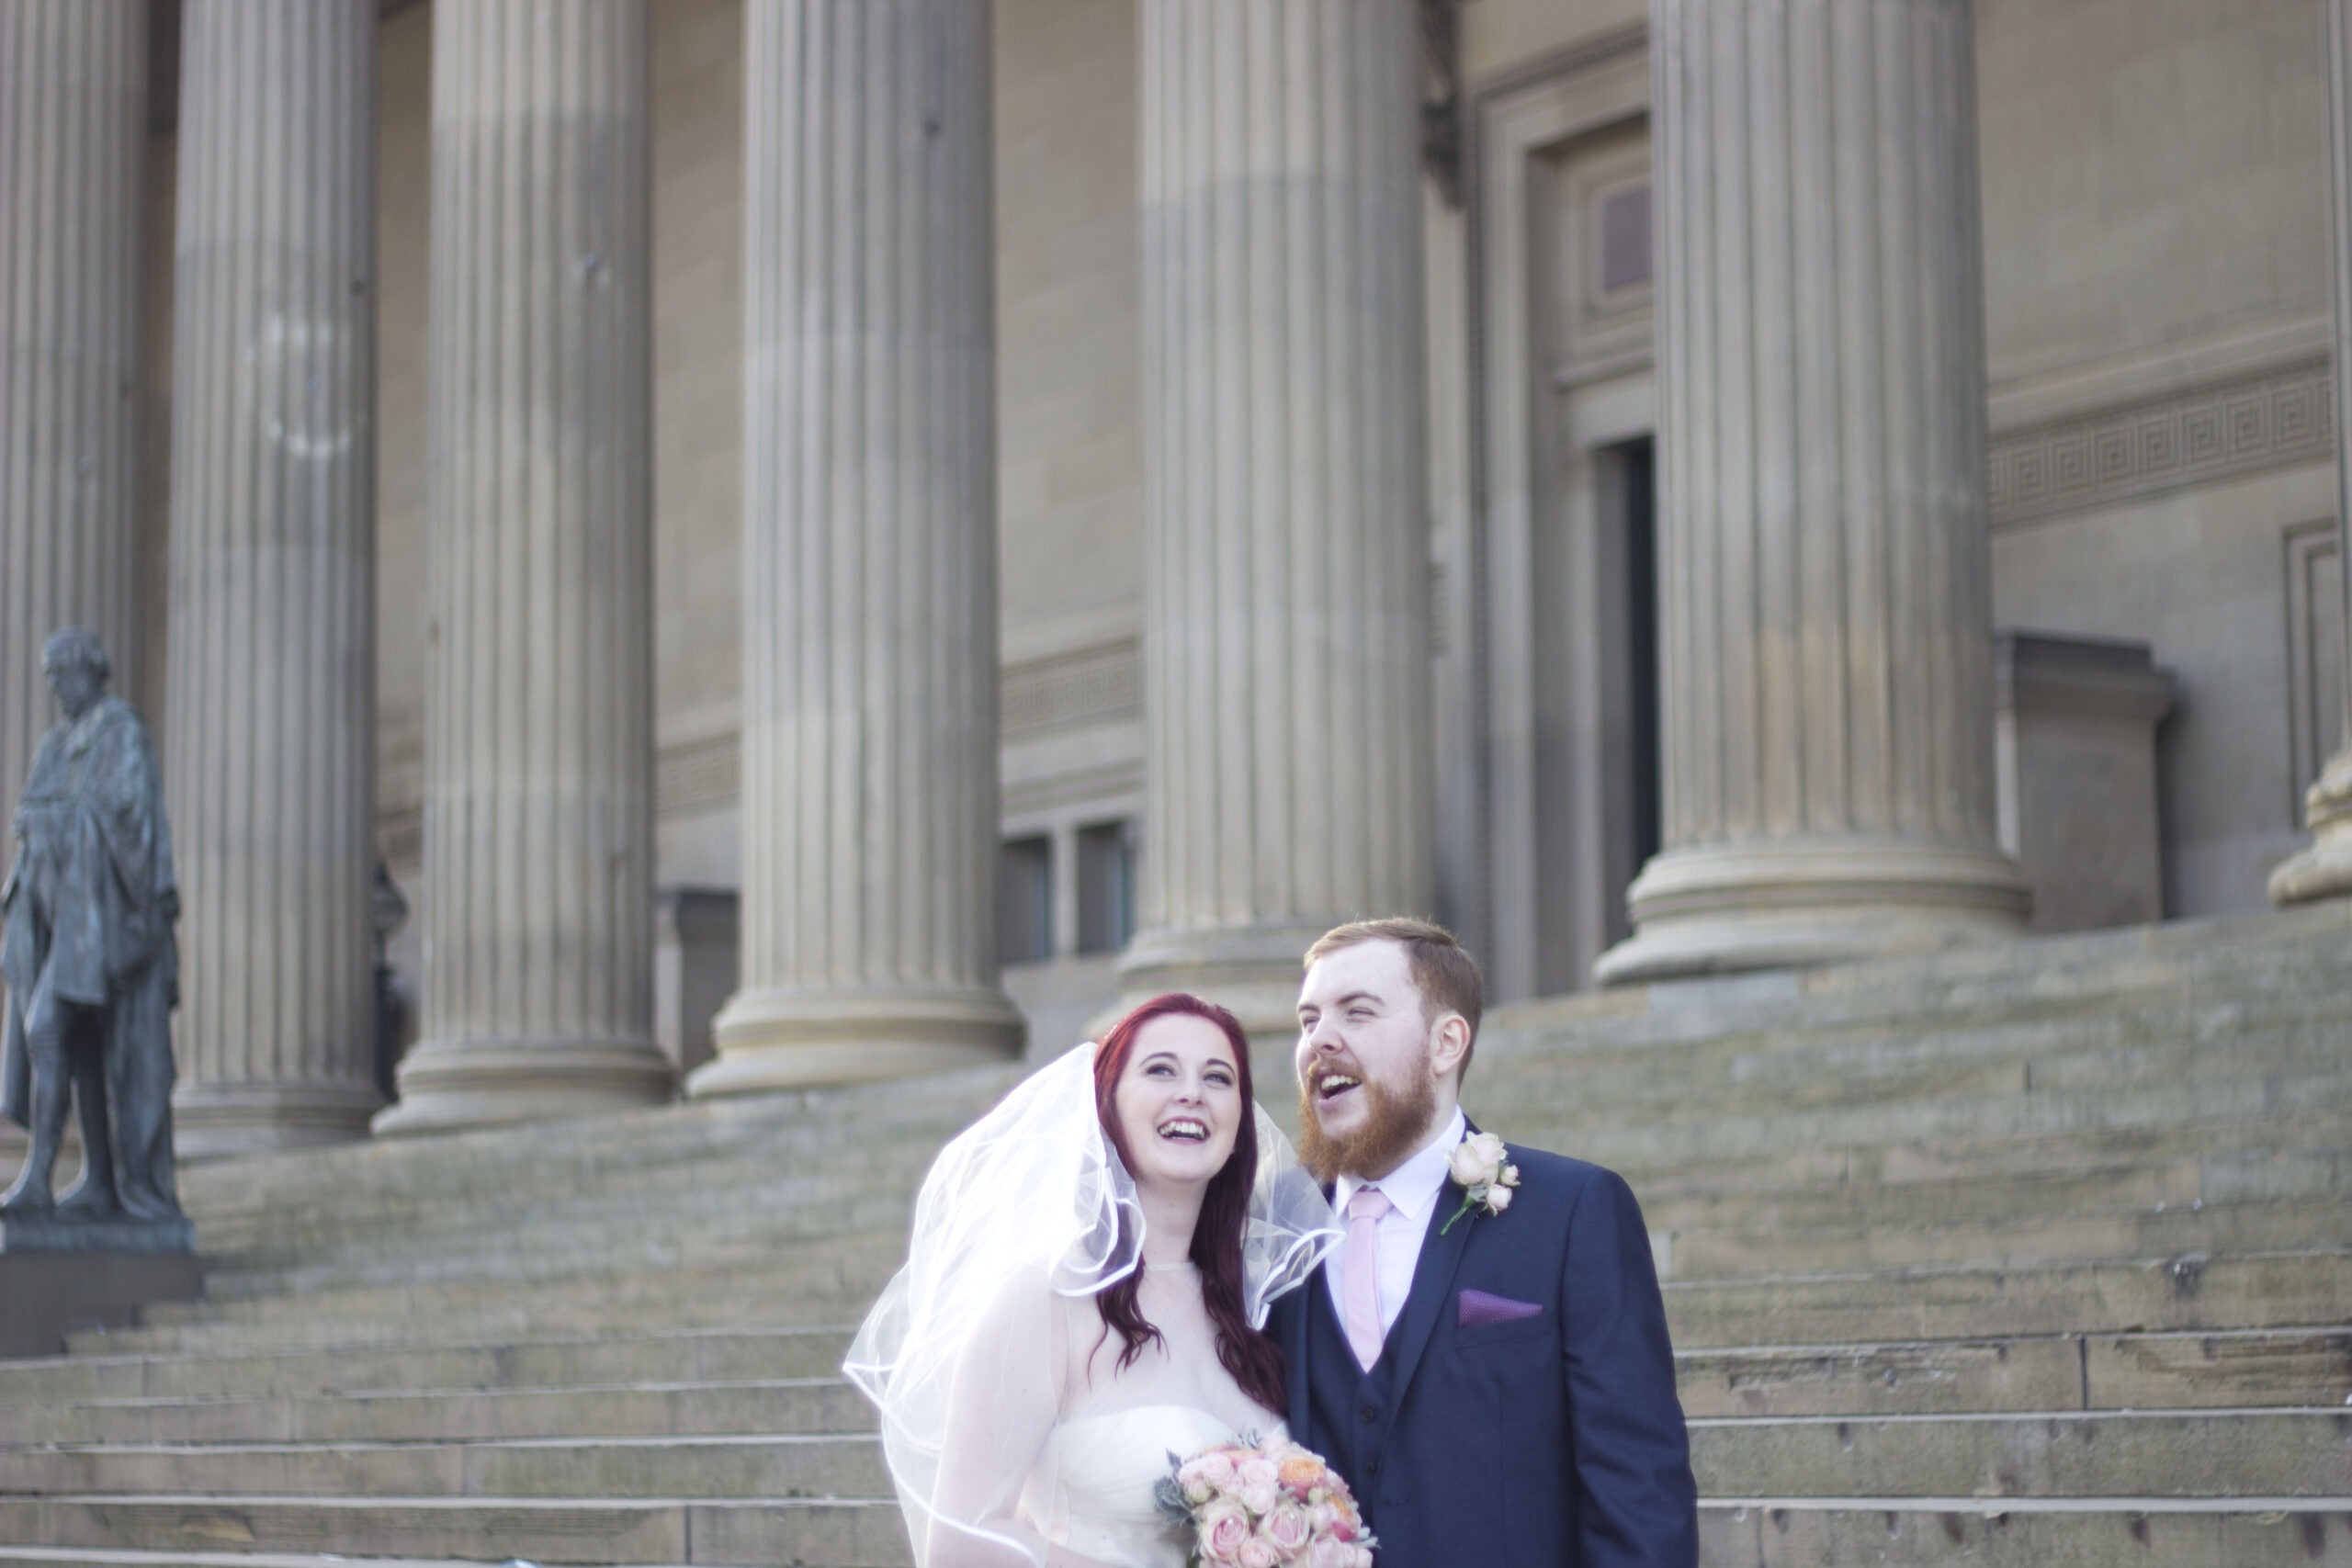 Liverpool Wedding Blog Wedding Photography